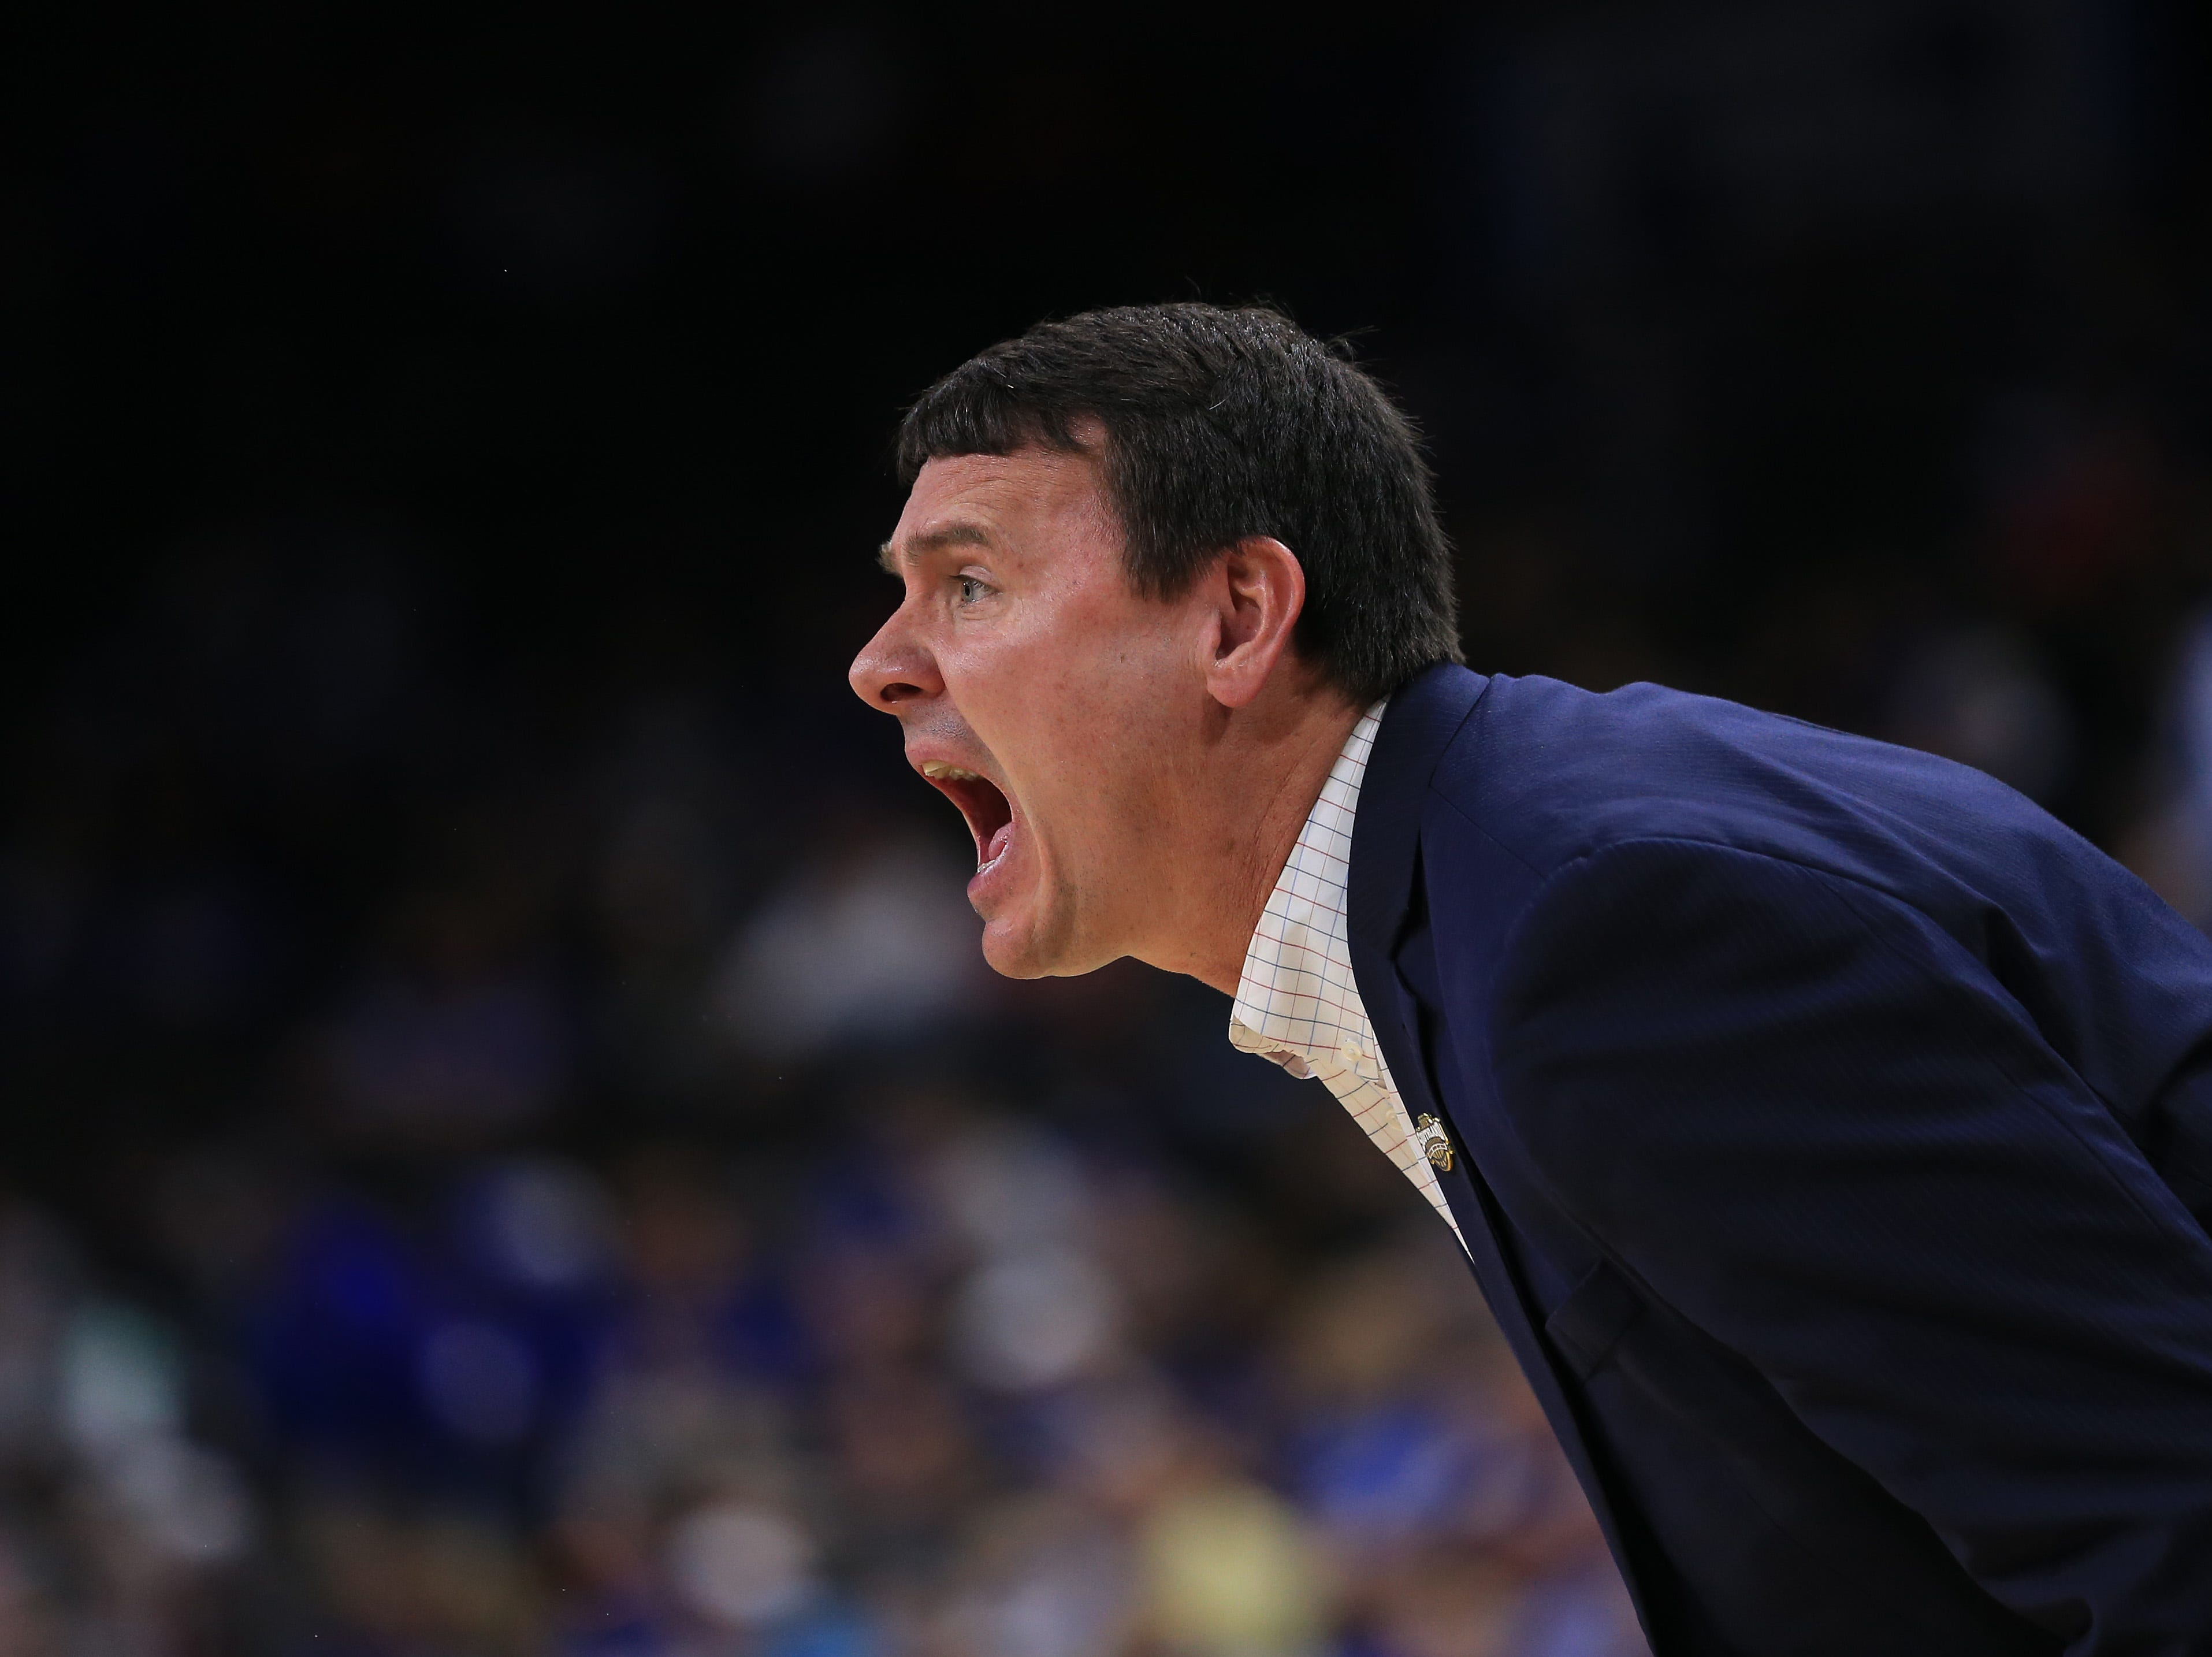 Mar 21, 2019; Jacksonville, FL, USA; Abilene Christian Wildcats head coach Joe Golding yells from the sidelines during the first quarter in the first round of the 2019 NCAA Tournament against the Kentucky Wildcats at Jacksonville Veterans Memorial Arena. Mandatory Credit: Matt Stamey-USA TODAY Sports